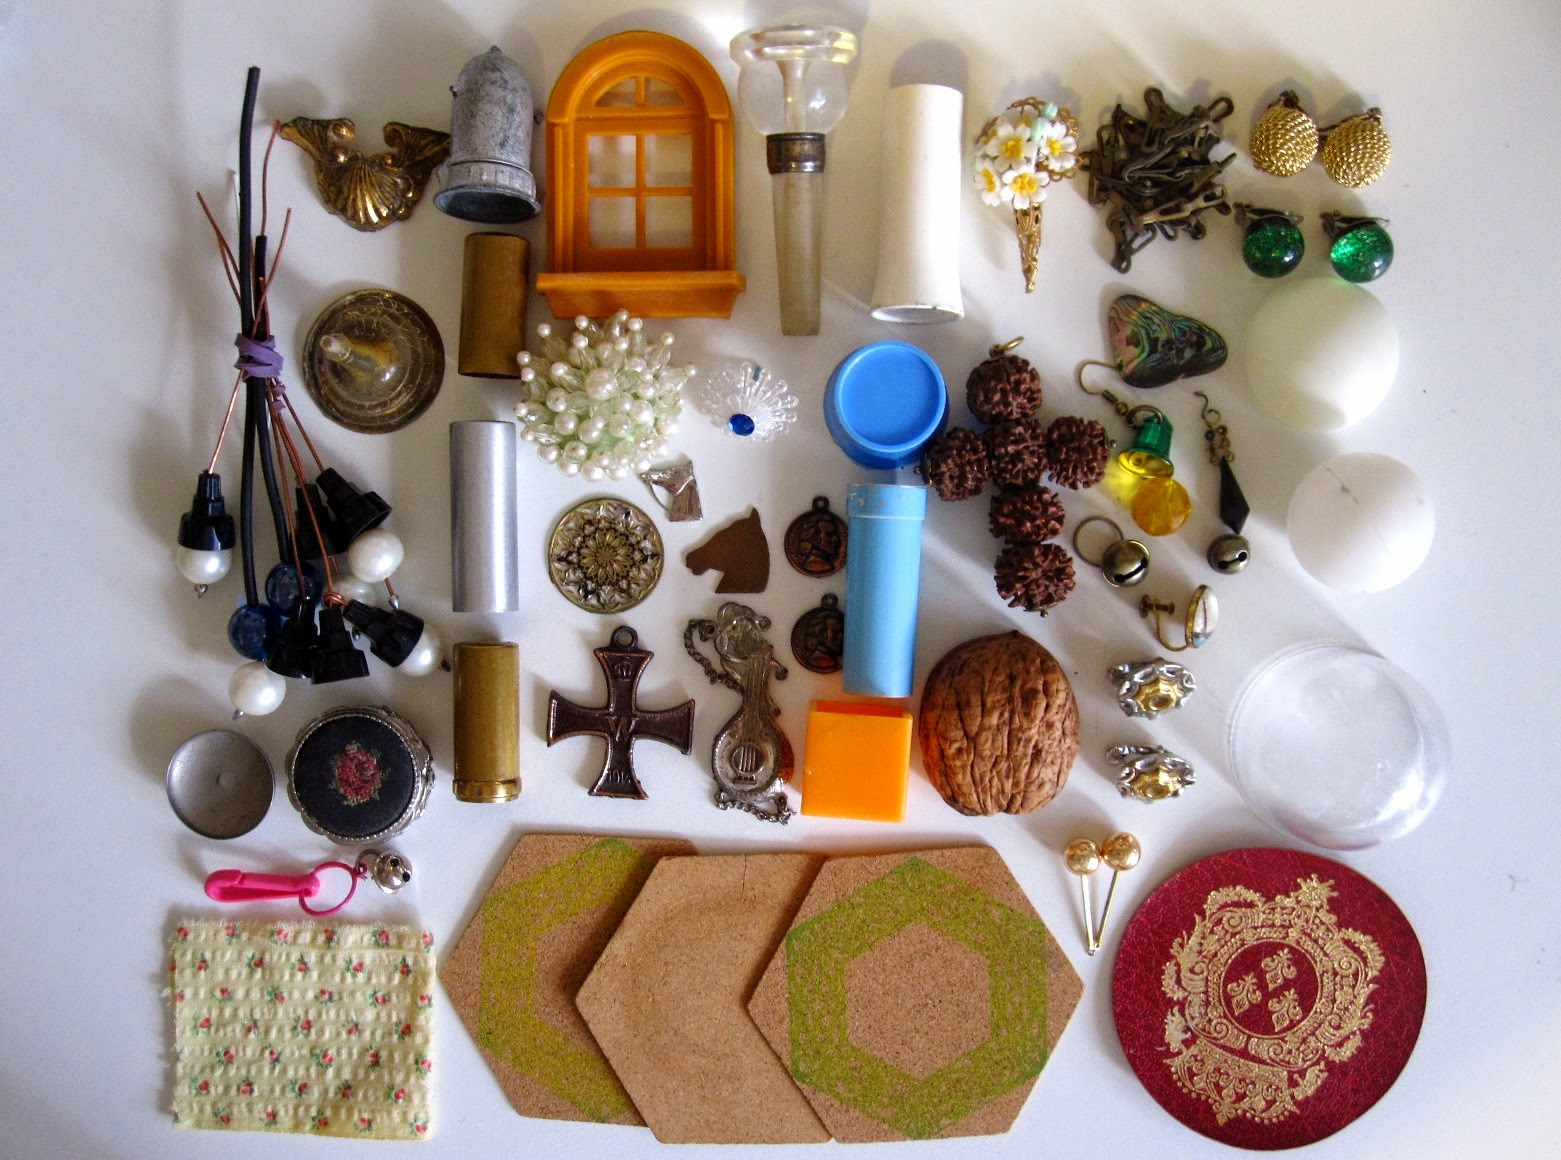 Contents of the bag of miniature bits, laid out in an orderly way.